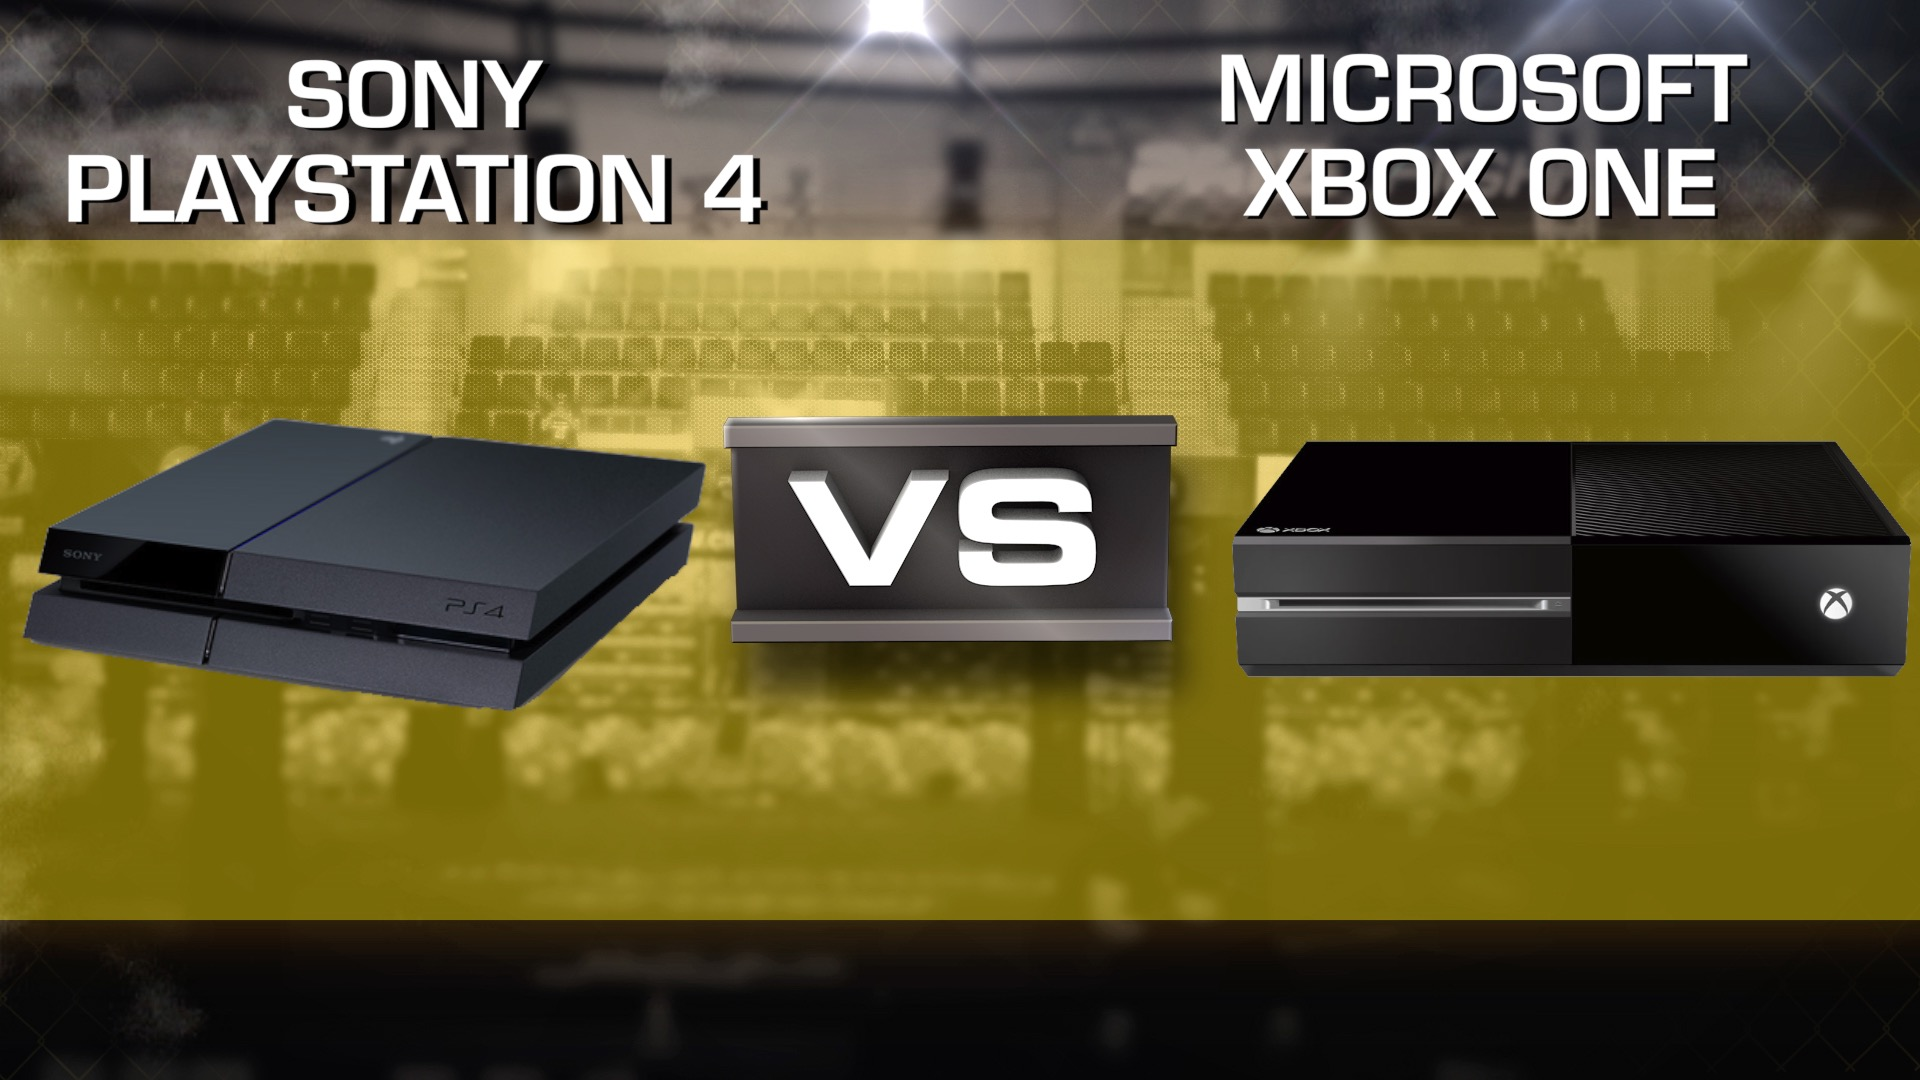 Video: Sony PS4 vs. Microsoft Xbox One rematch